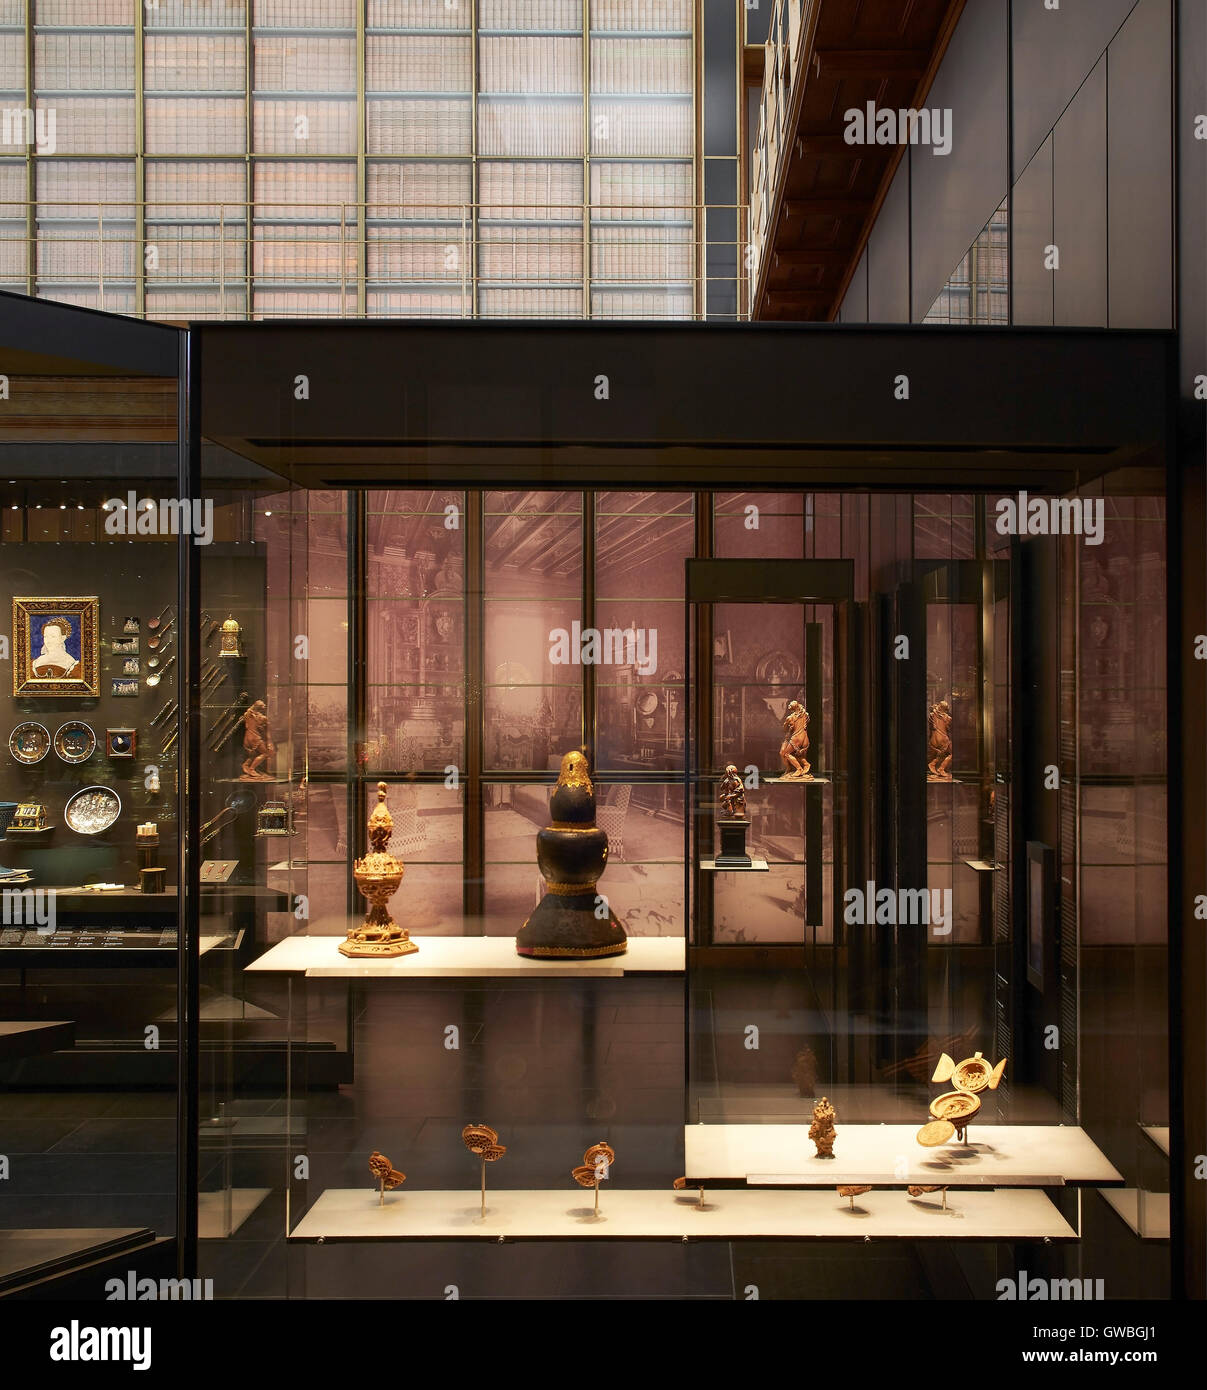 Showcase with artefact displays. Waddesdon Bequest Gallery at the British Museum, London, United Kingdom. Architect: - Stock Image